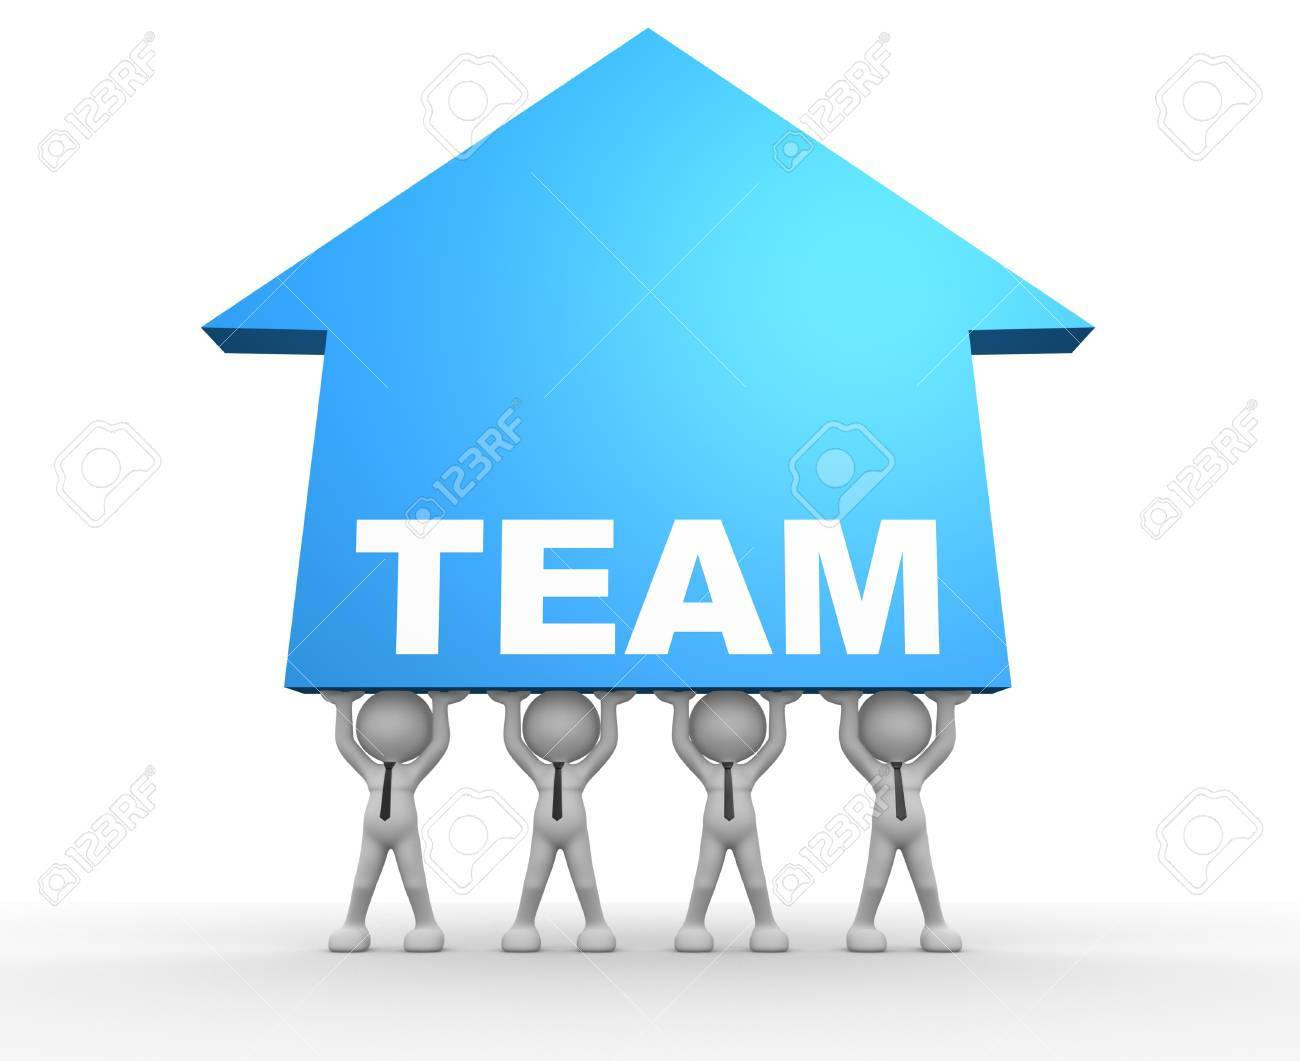 3d people - man, person with an arrow growth. Concept of teamwork Stock Photo - 17276686